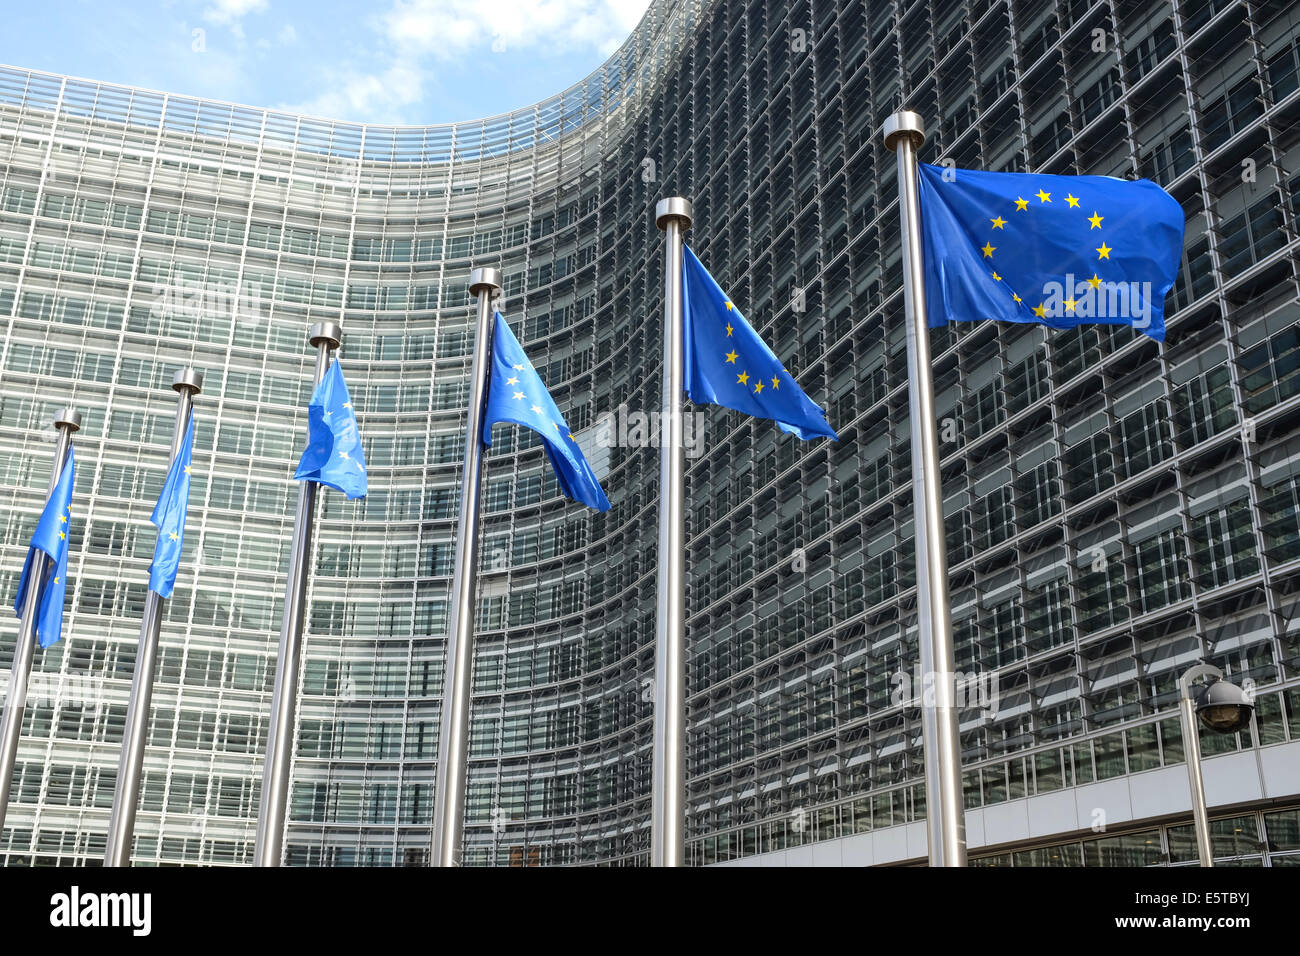 European Union flags in front of the Berlaymont Building (European Commission), Wetstraat 200, Brussels, Belgium - Stock Image